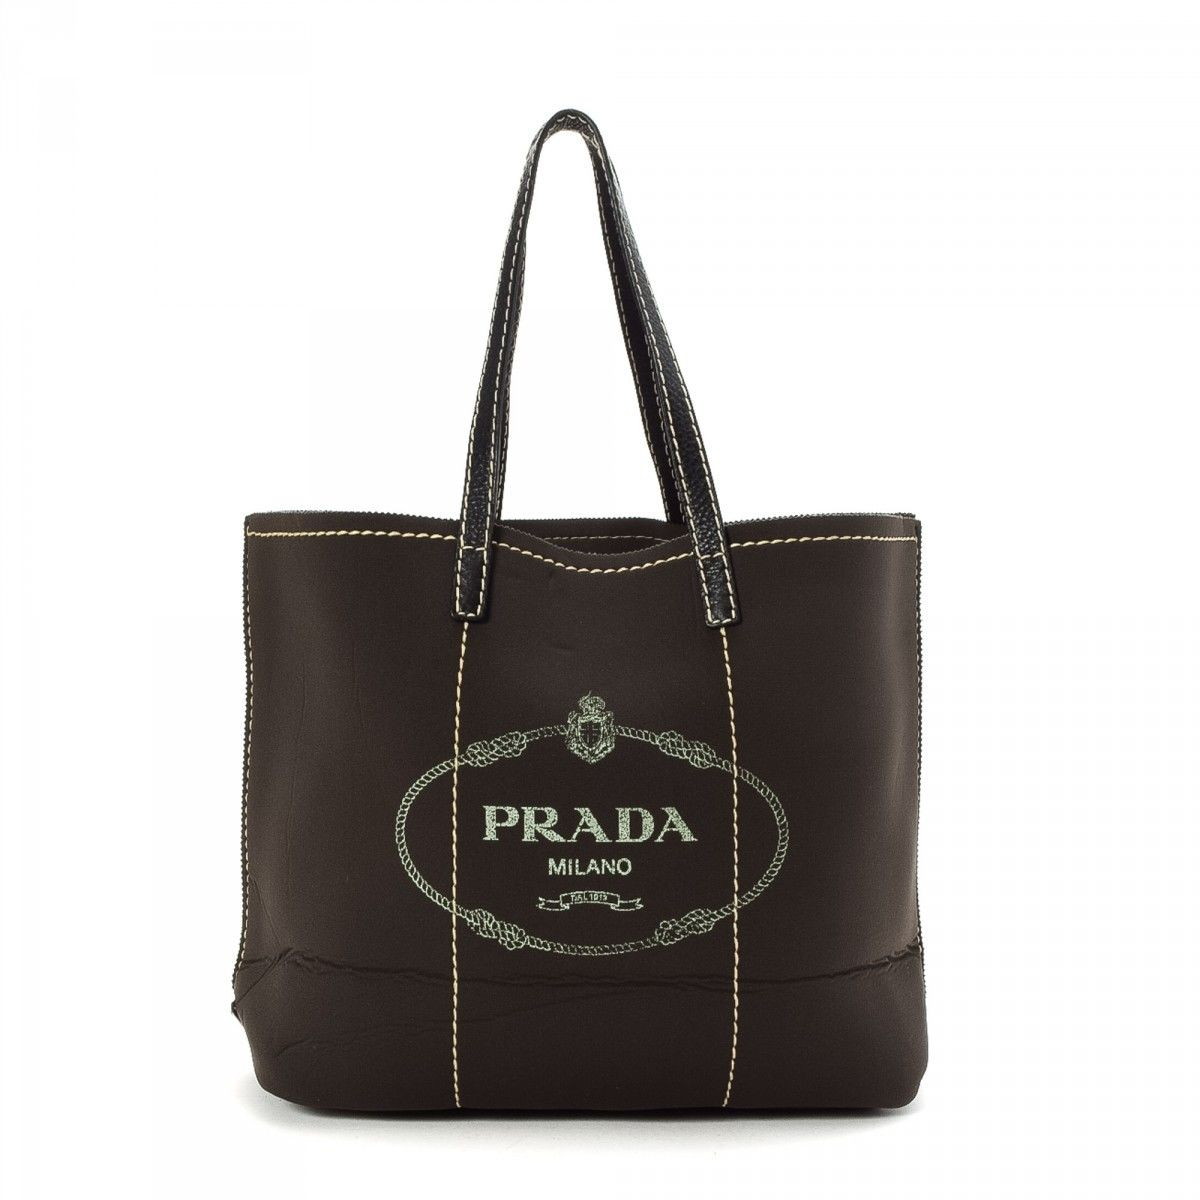 e9d447d47545 Prada Tote Bag Neoprene - LXRandCo - Pre-Owned Luxury Vintage